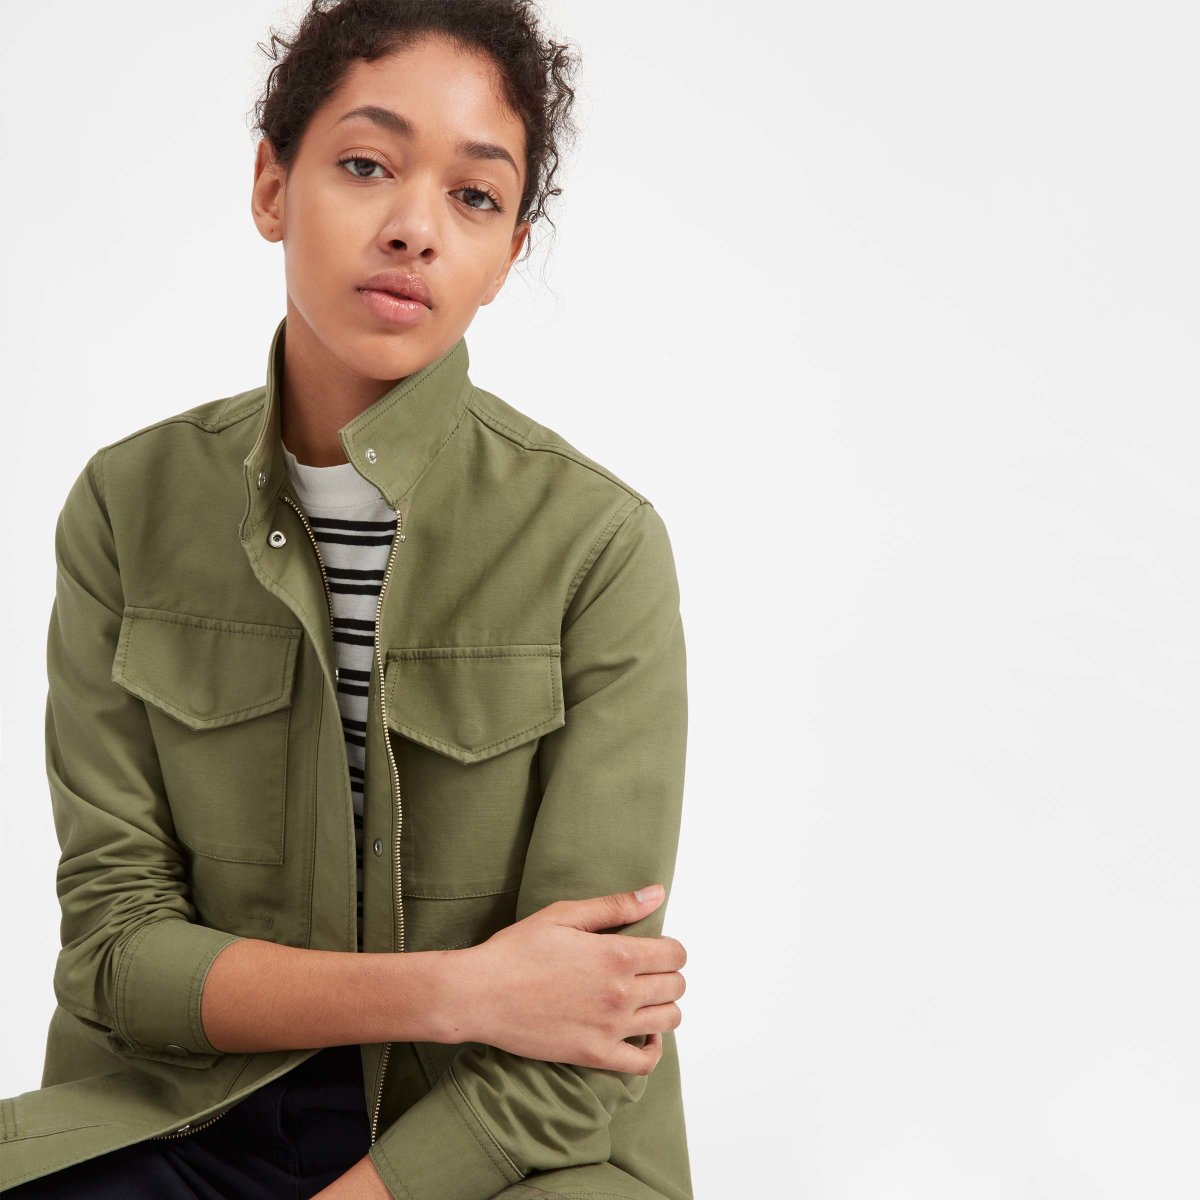 a7ee7a5ee The Modern Utility Jacket